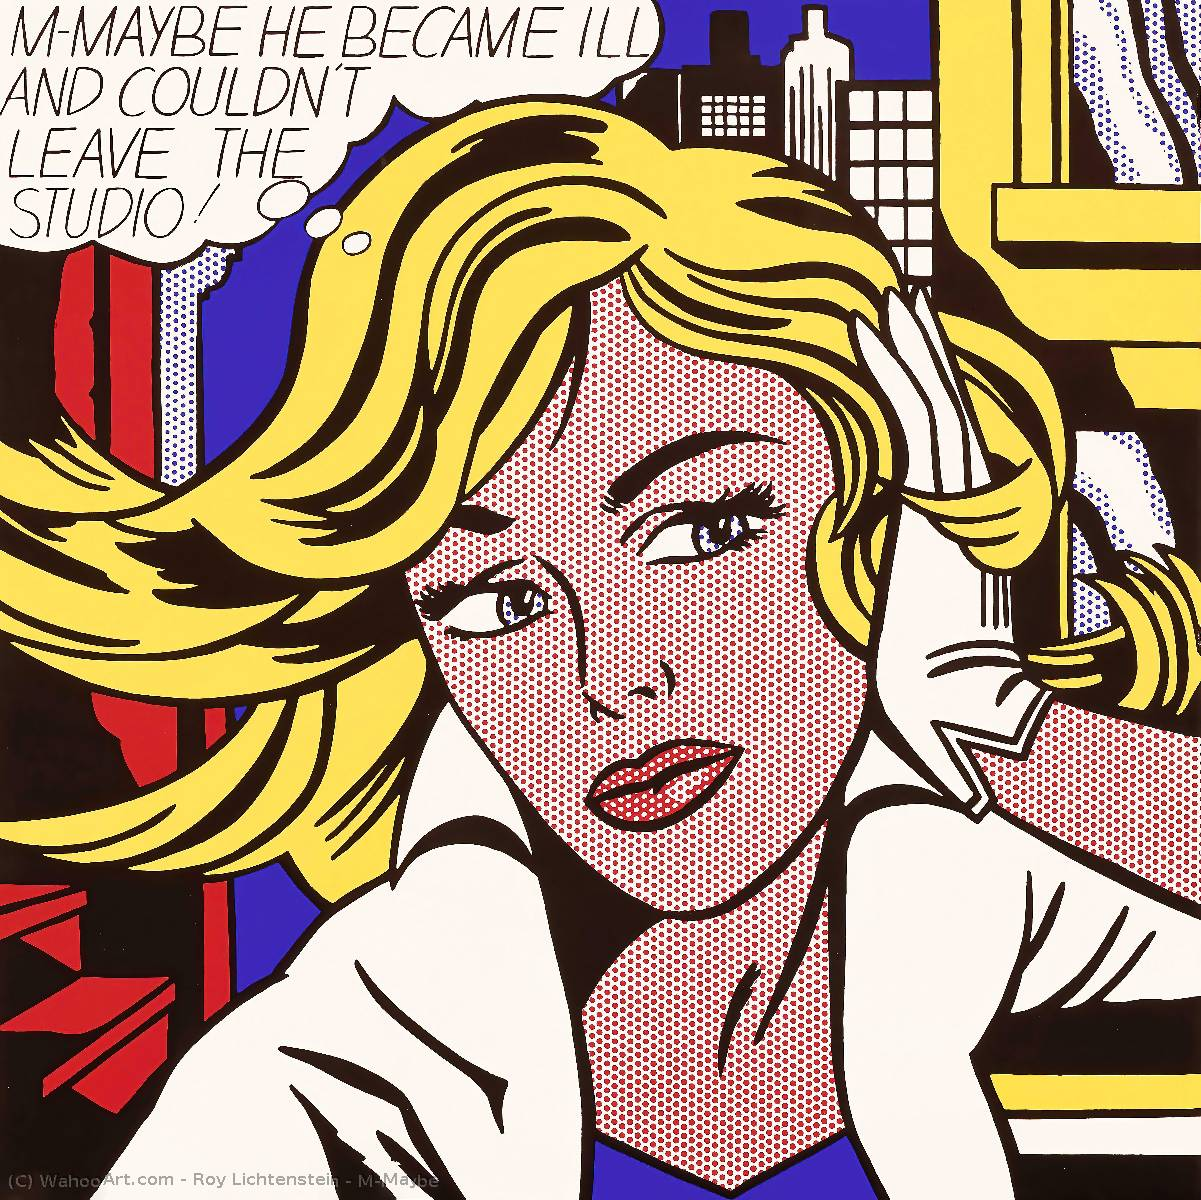 | M-Maybe von Roy Lichtenstein | Most-Famous-Paintings.com